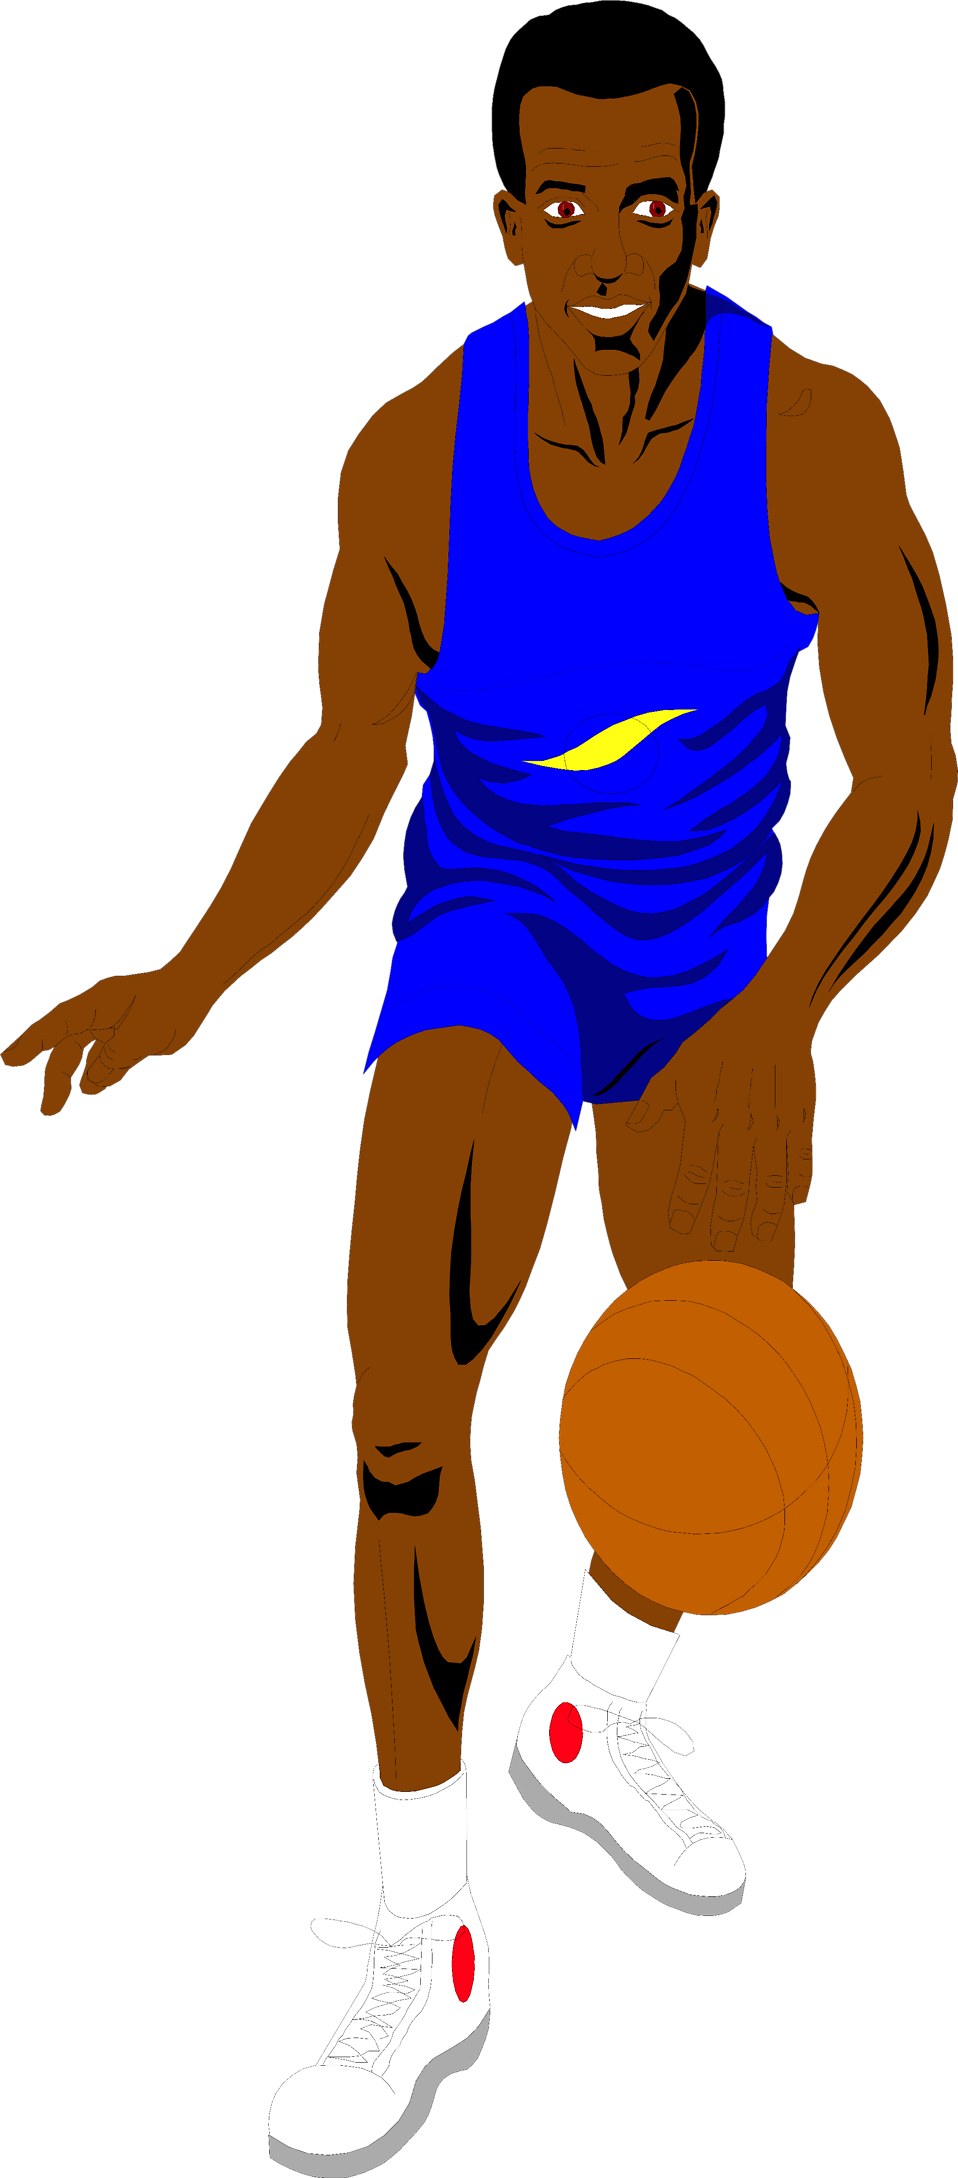 Passing a basketball clipart svg black and white library Basketball | Free Stock Photo | Illustration of an African American ... svg black and white library